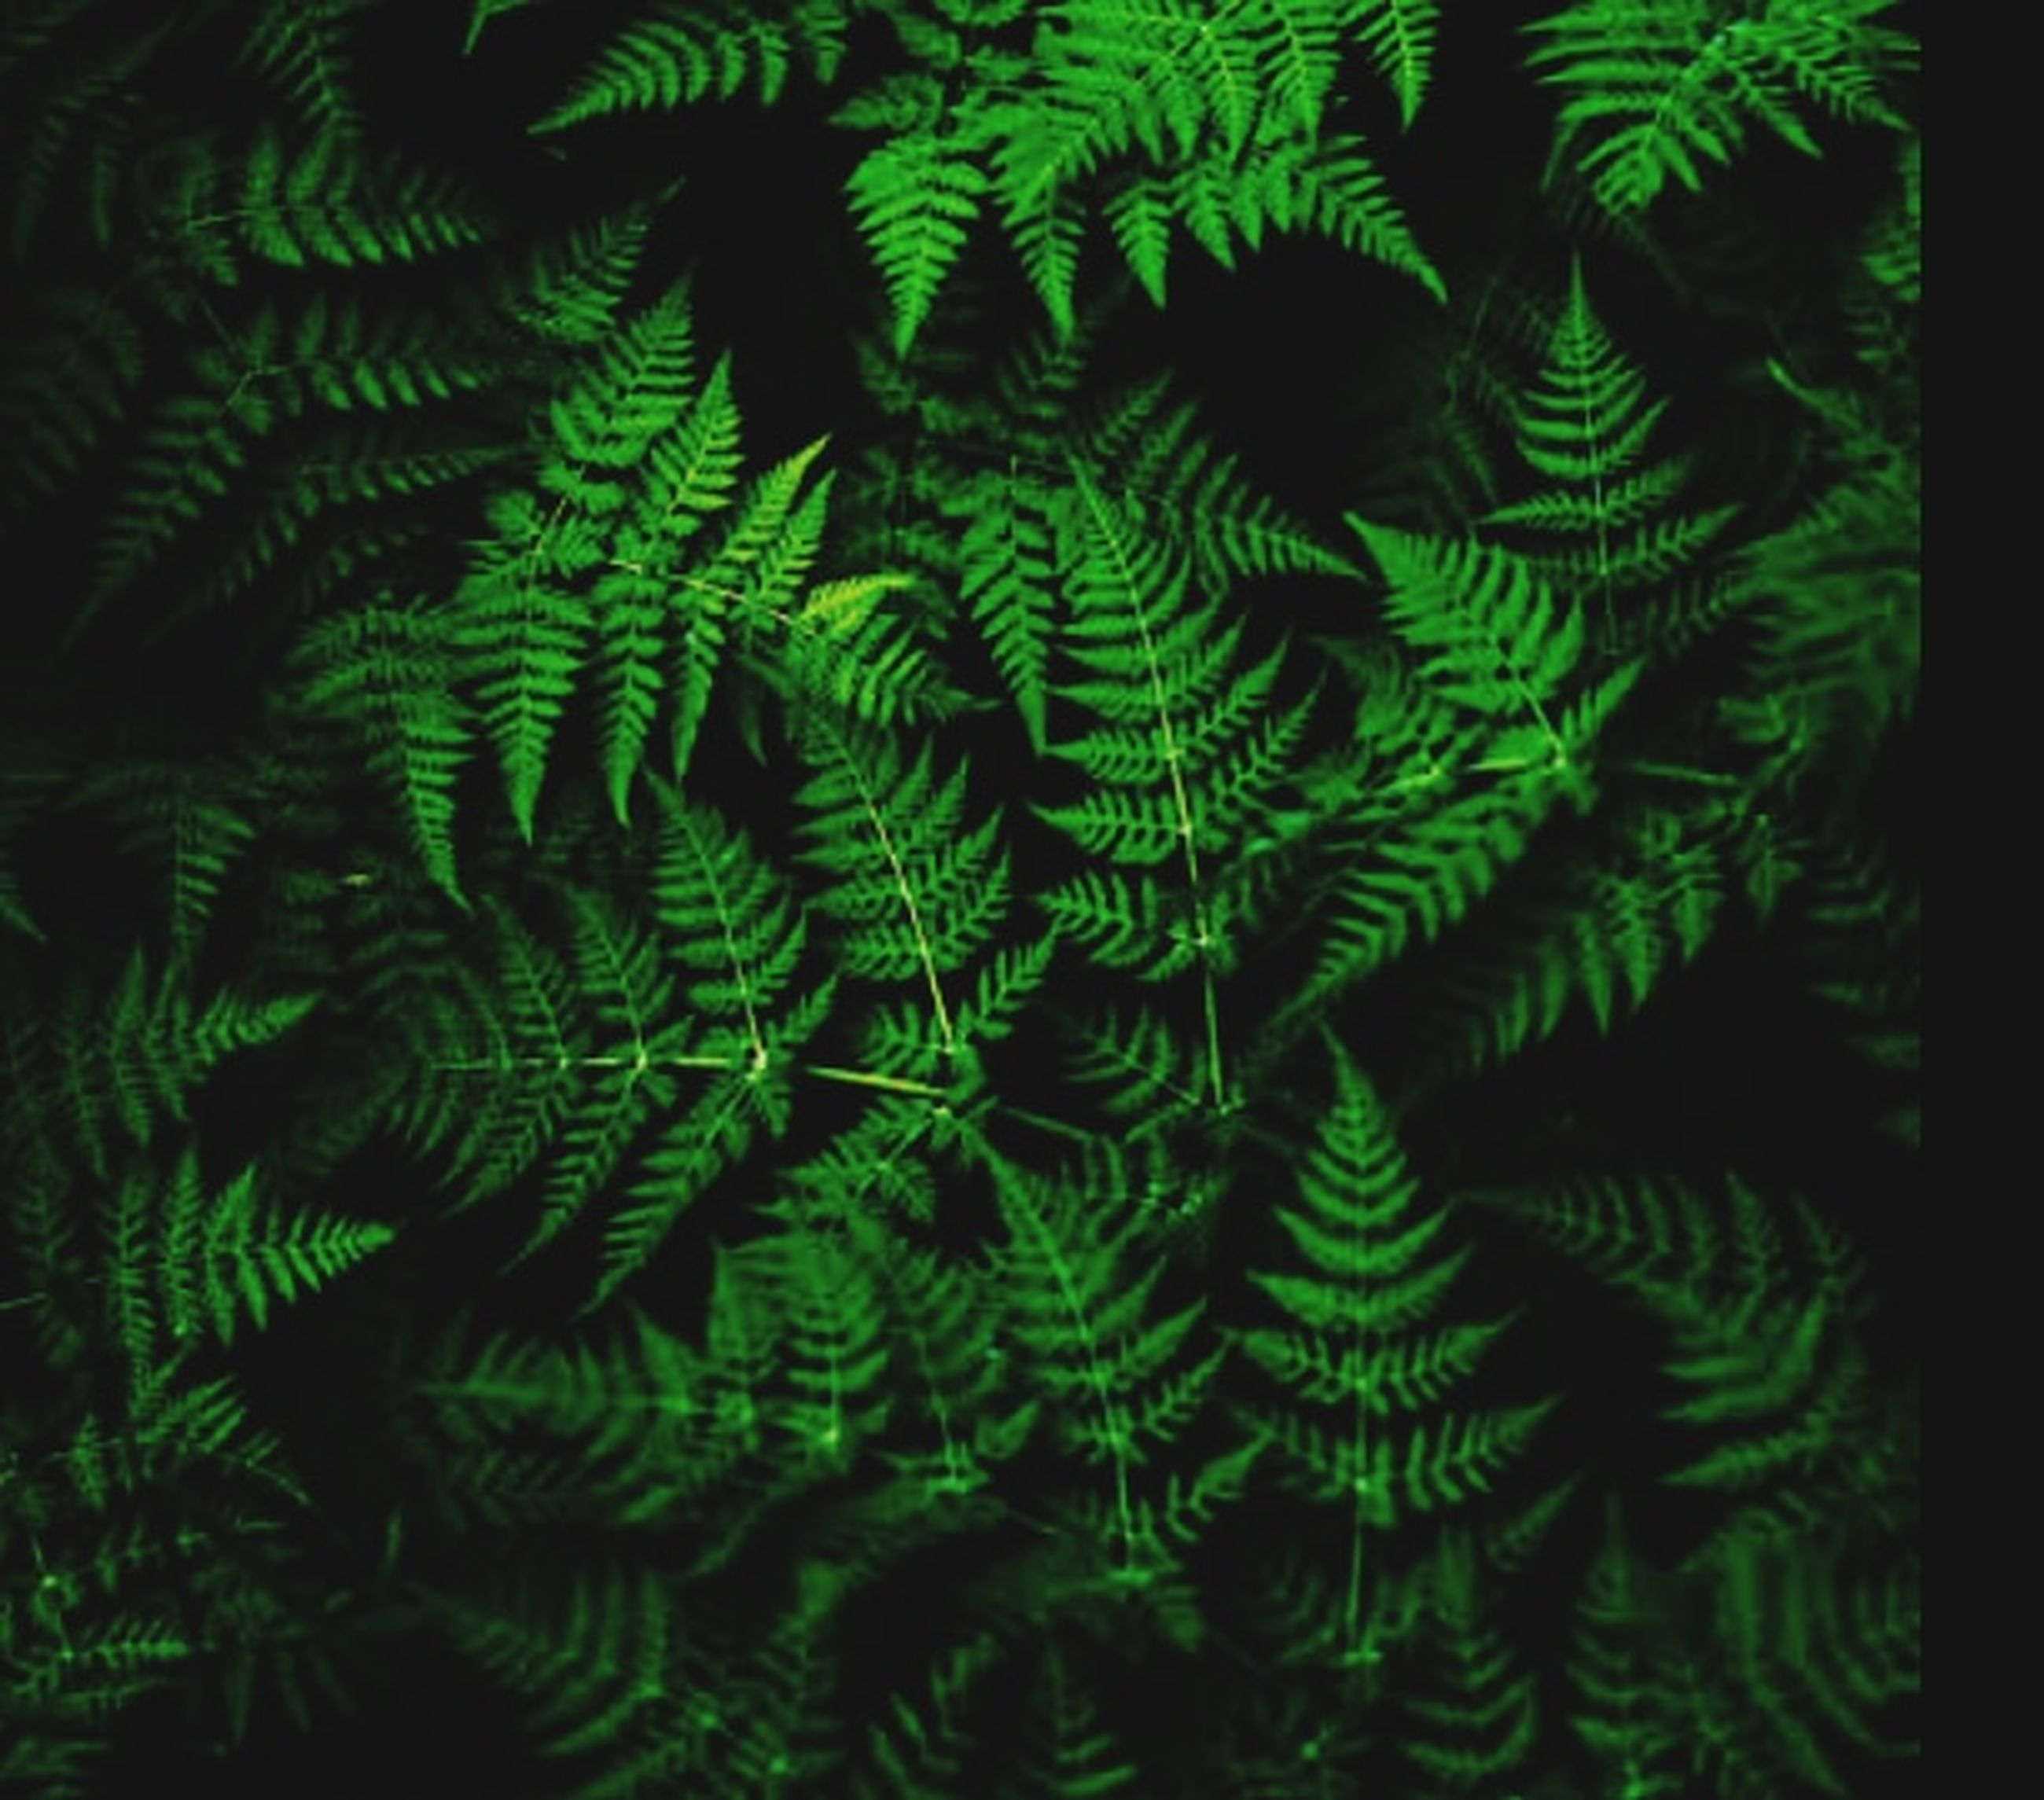 green, leaf, plant, tree, growth, nature, no people, backgrounds, pattern, fern, plant part, jungle, ferns and horsetails, full frame, close-up, beauty in nature